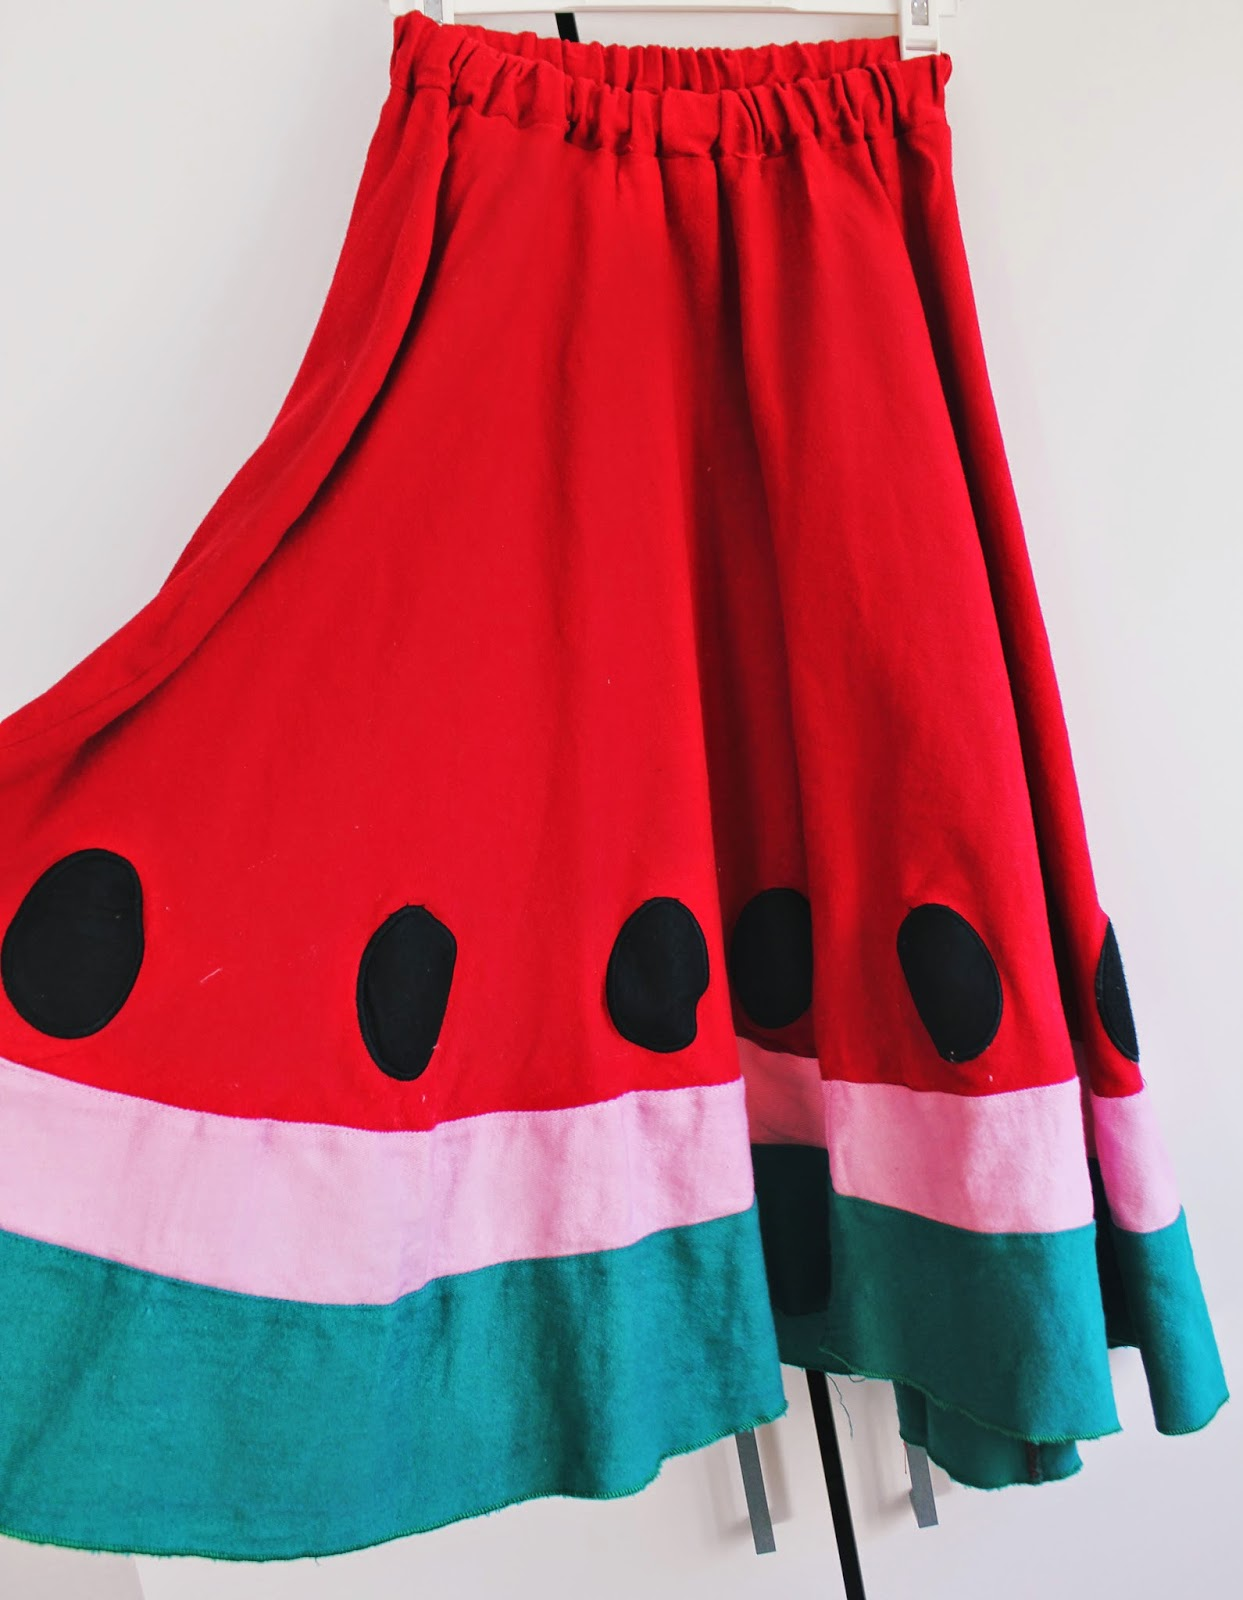 Watermelon skirt Taobao